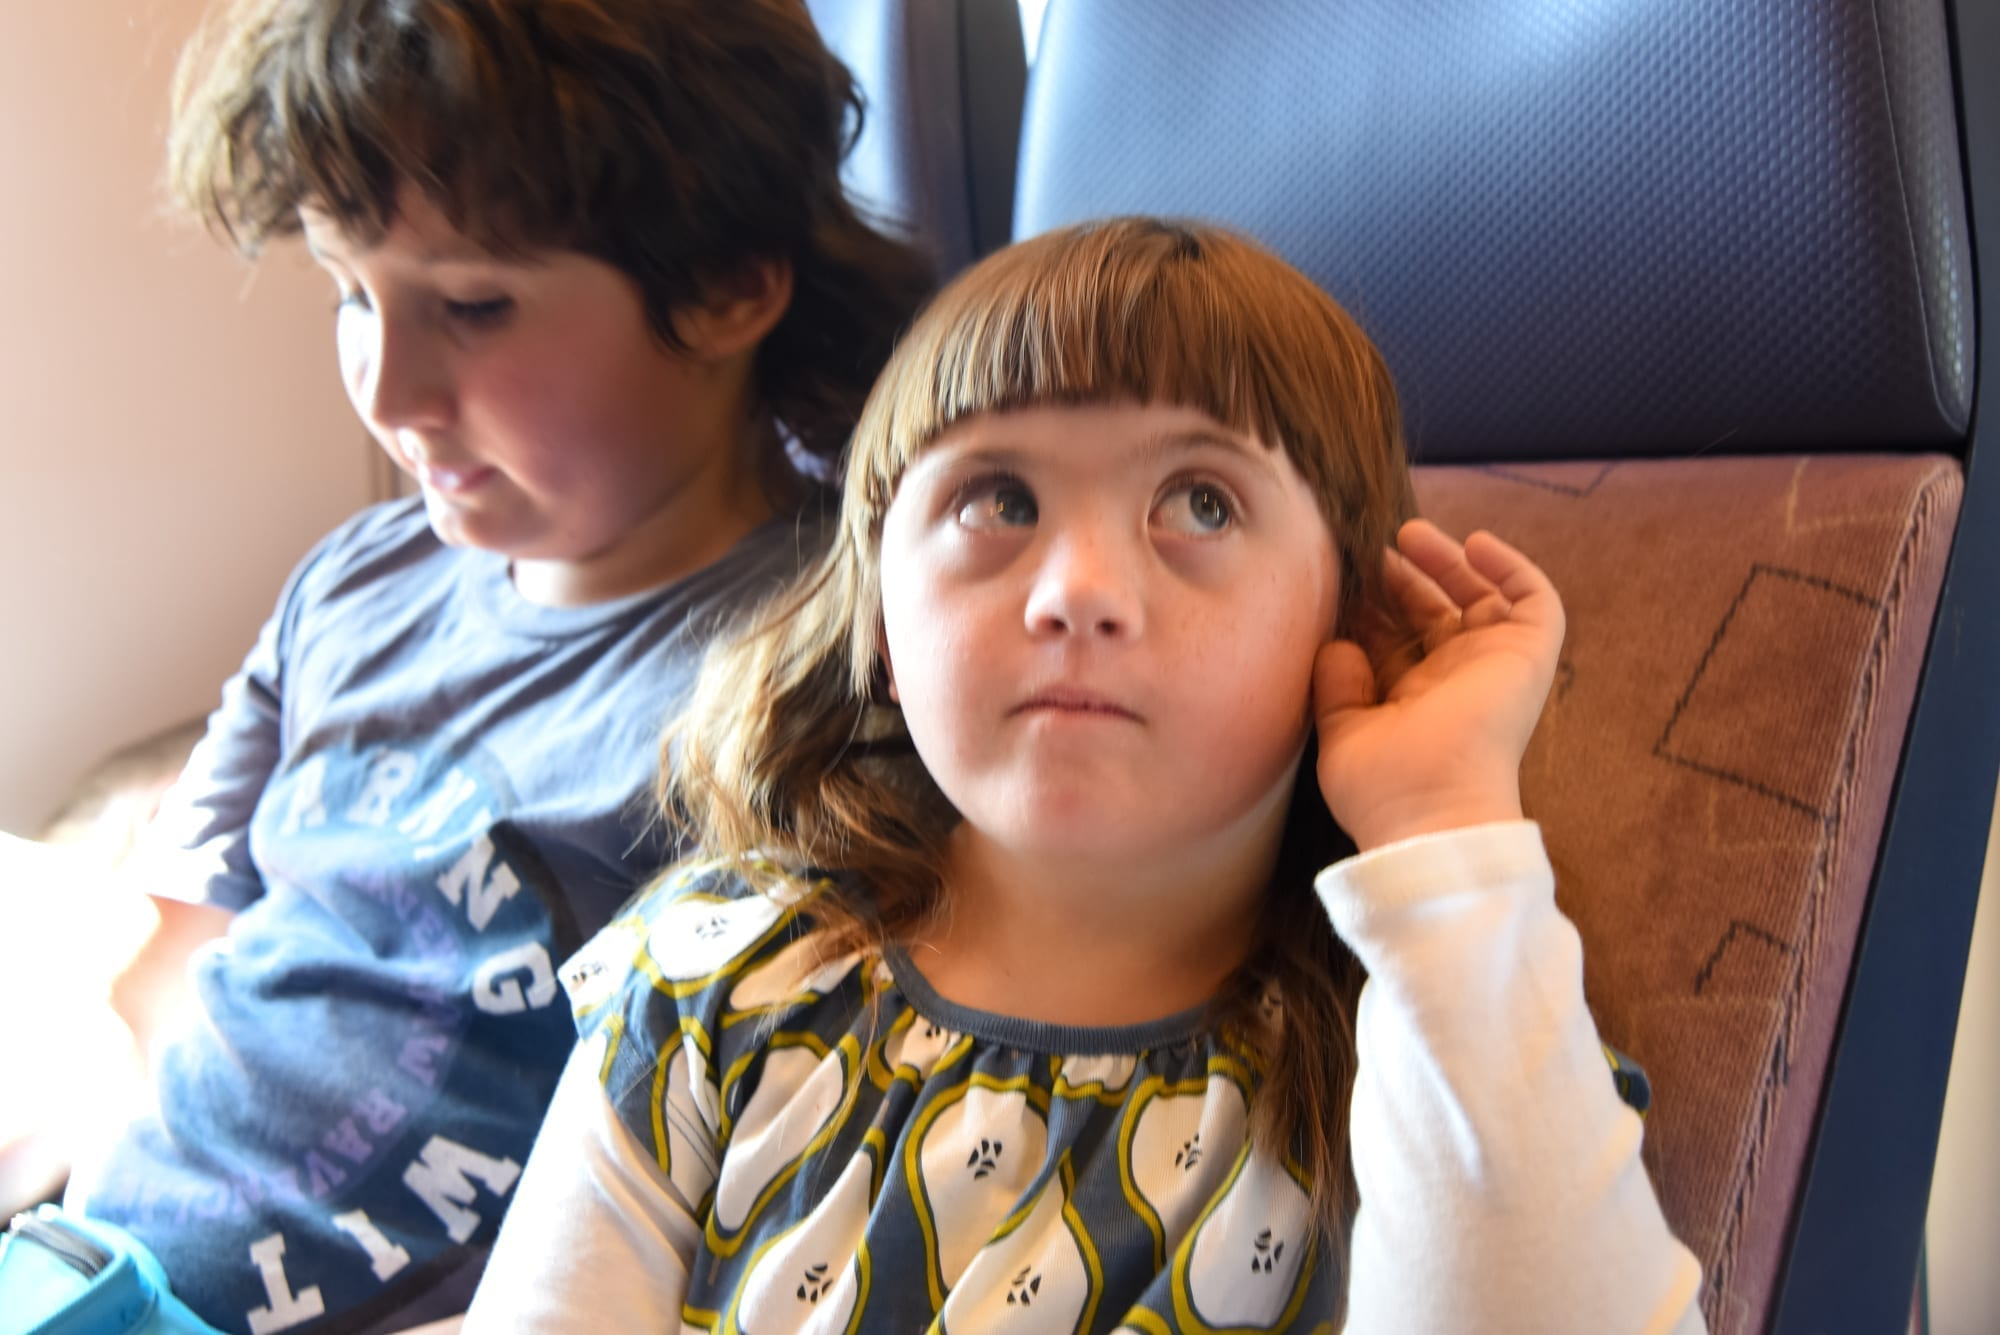 access on trains in holland: a little girl cups her ear and is listening